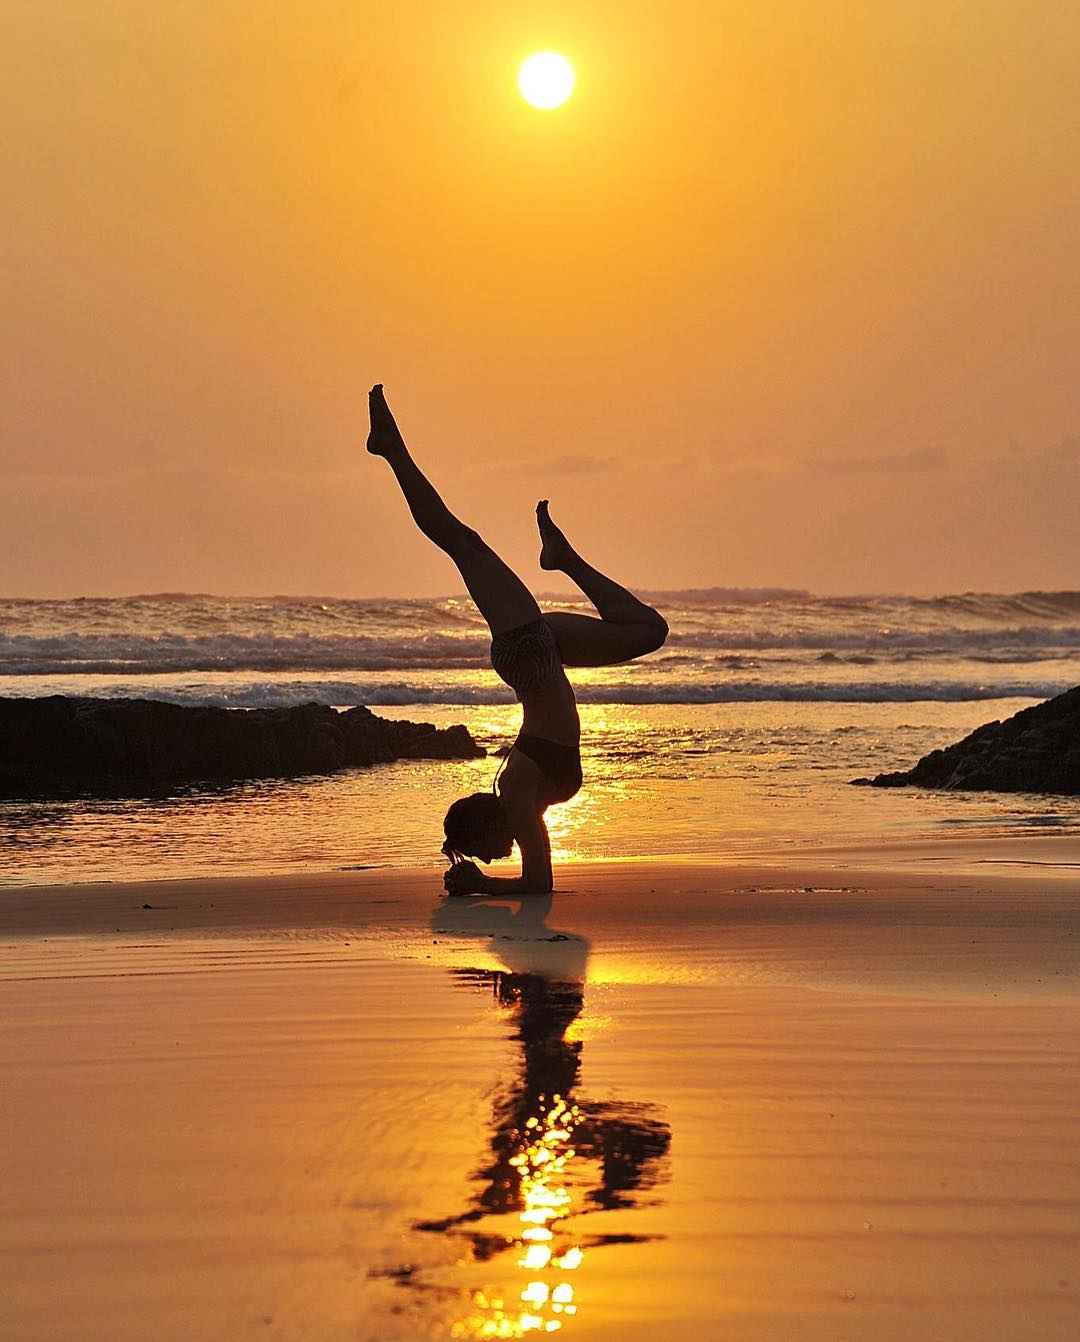 Yoga and sunsets at Santa Teresa beach, photo credit @nancygoodfellowyoga.